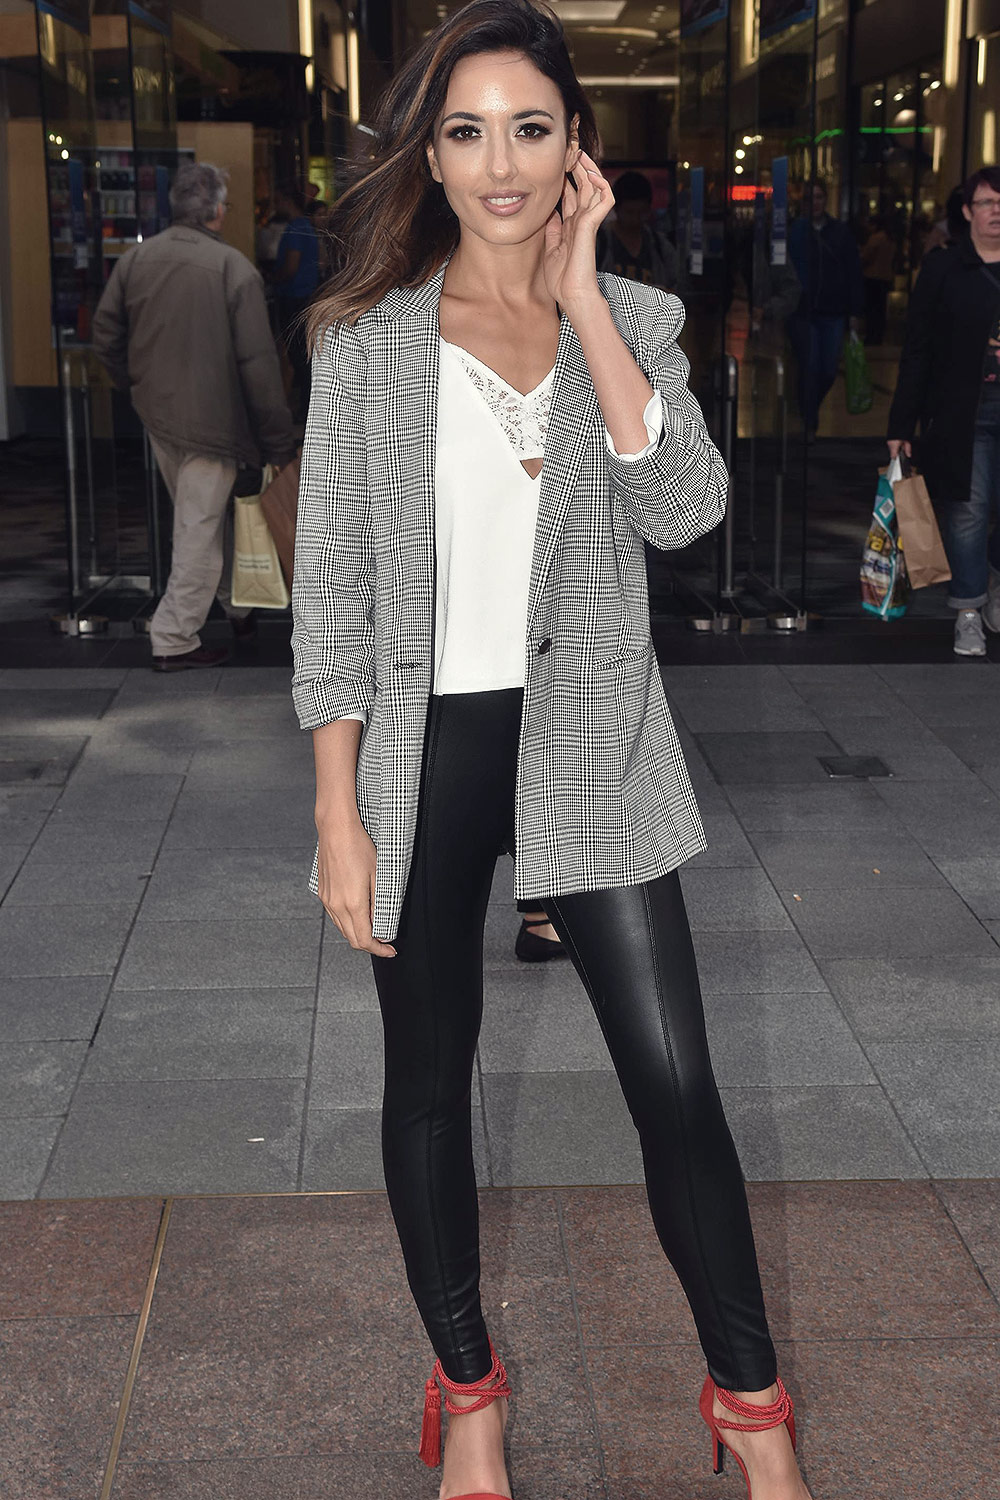 Nadia Forde attends Launches Jervis Shopping Centre's 21st Birthday